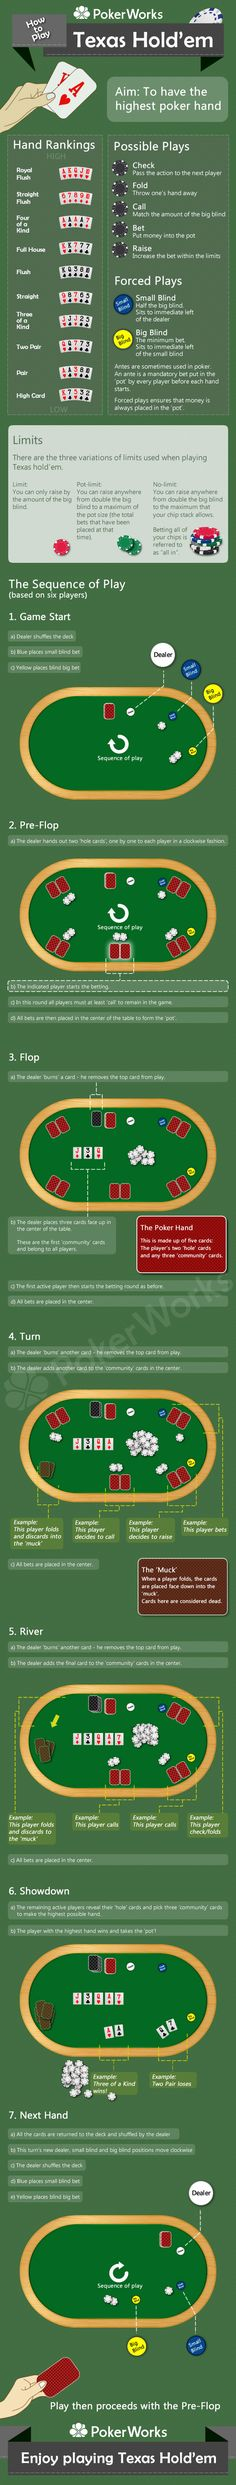 Texas Hold'em Rules | PokerWorks